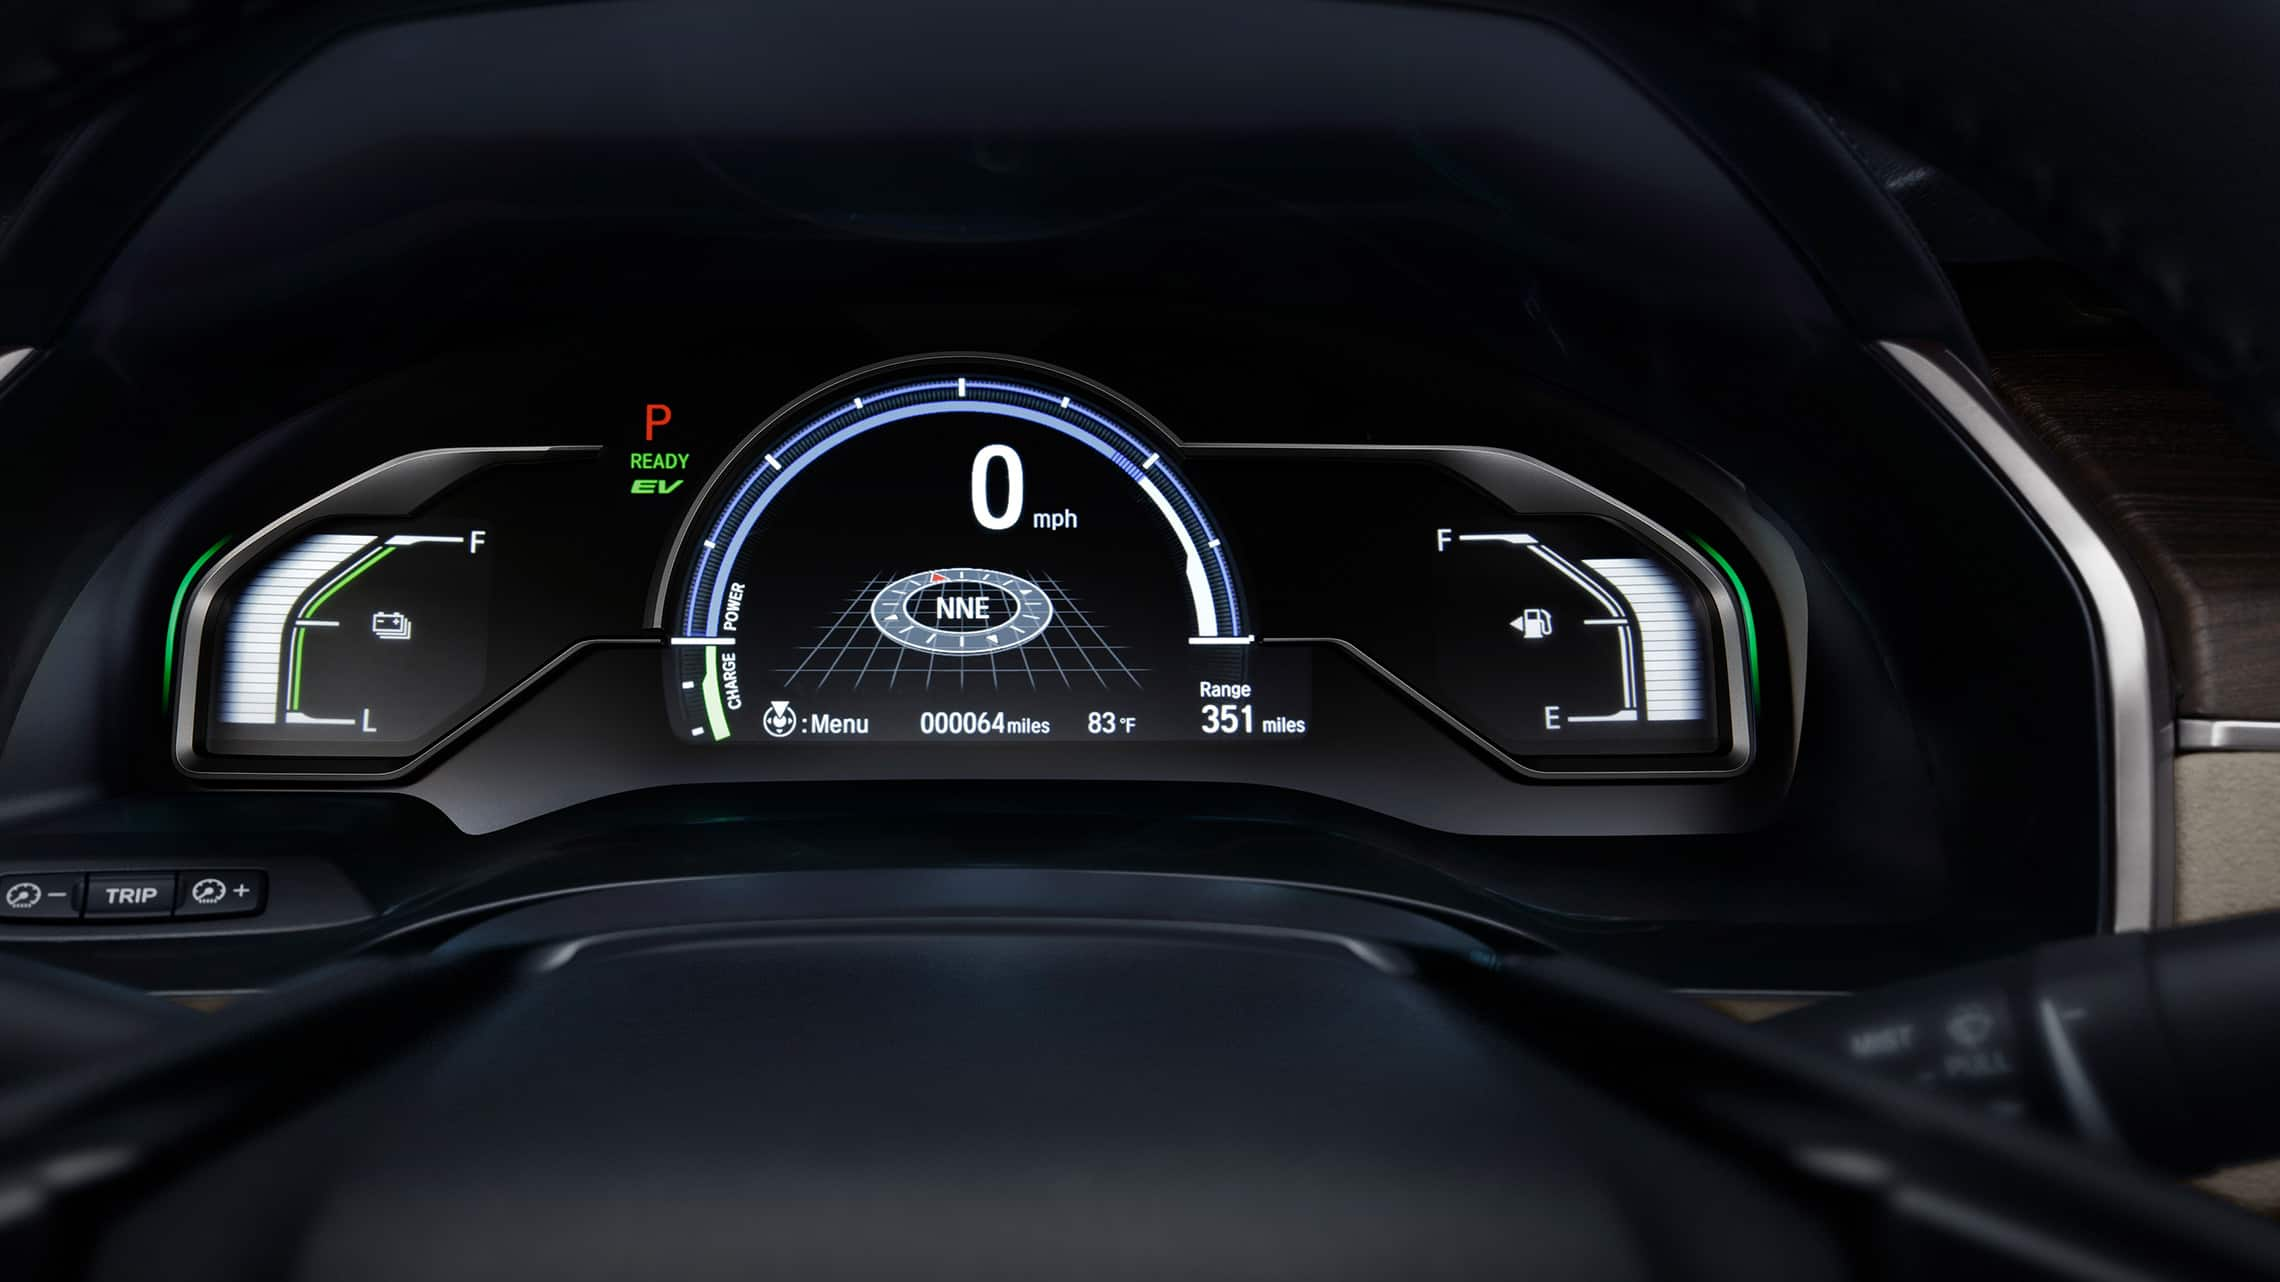 Detail of digital Driver Information Interface in 2020 Clarity Plug-In Hybrid.